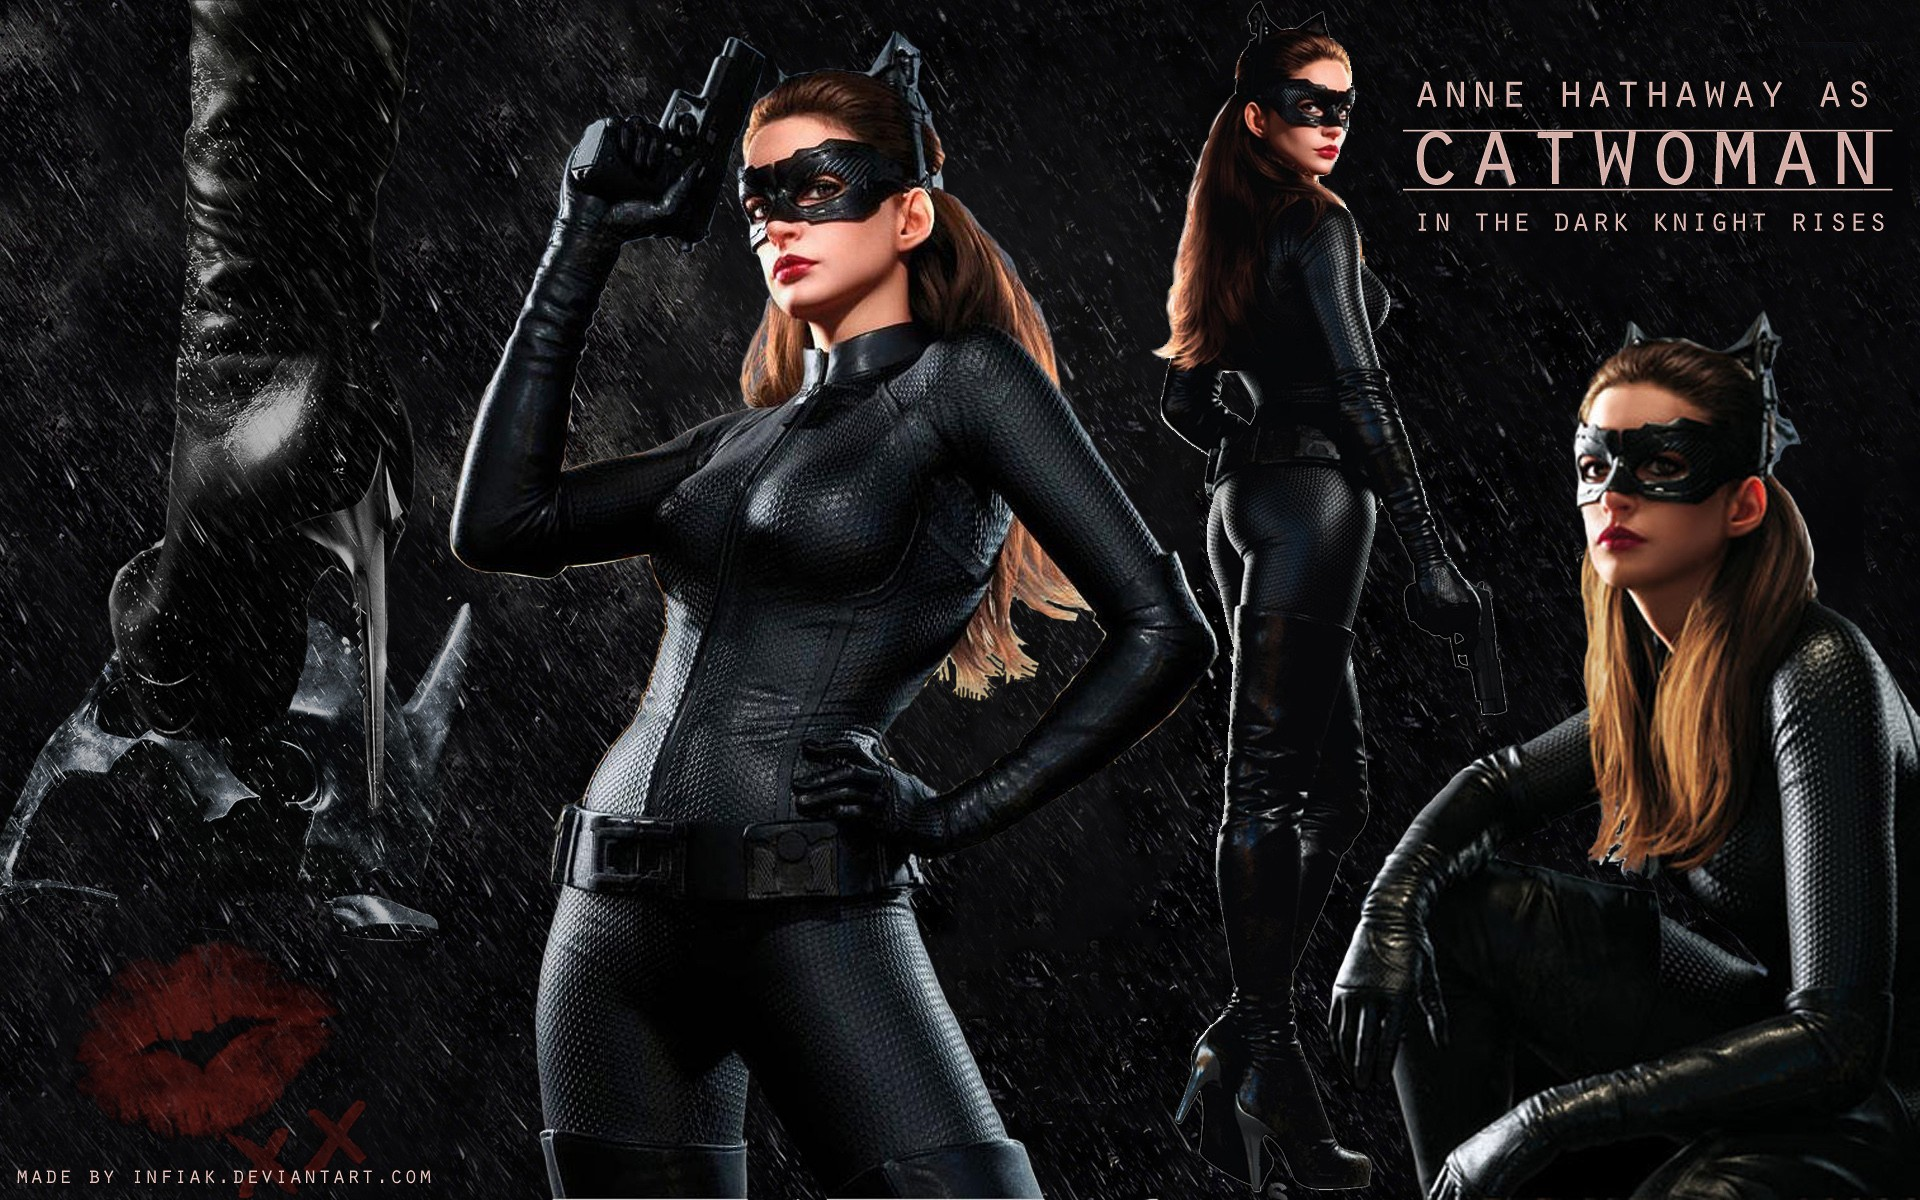 Catwoman wallpaper ·① Download free awesome wallpapers for ...